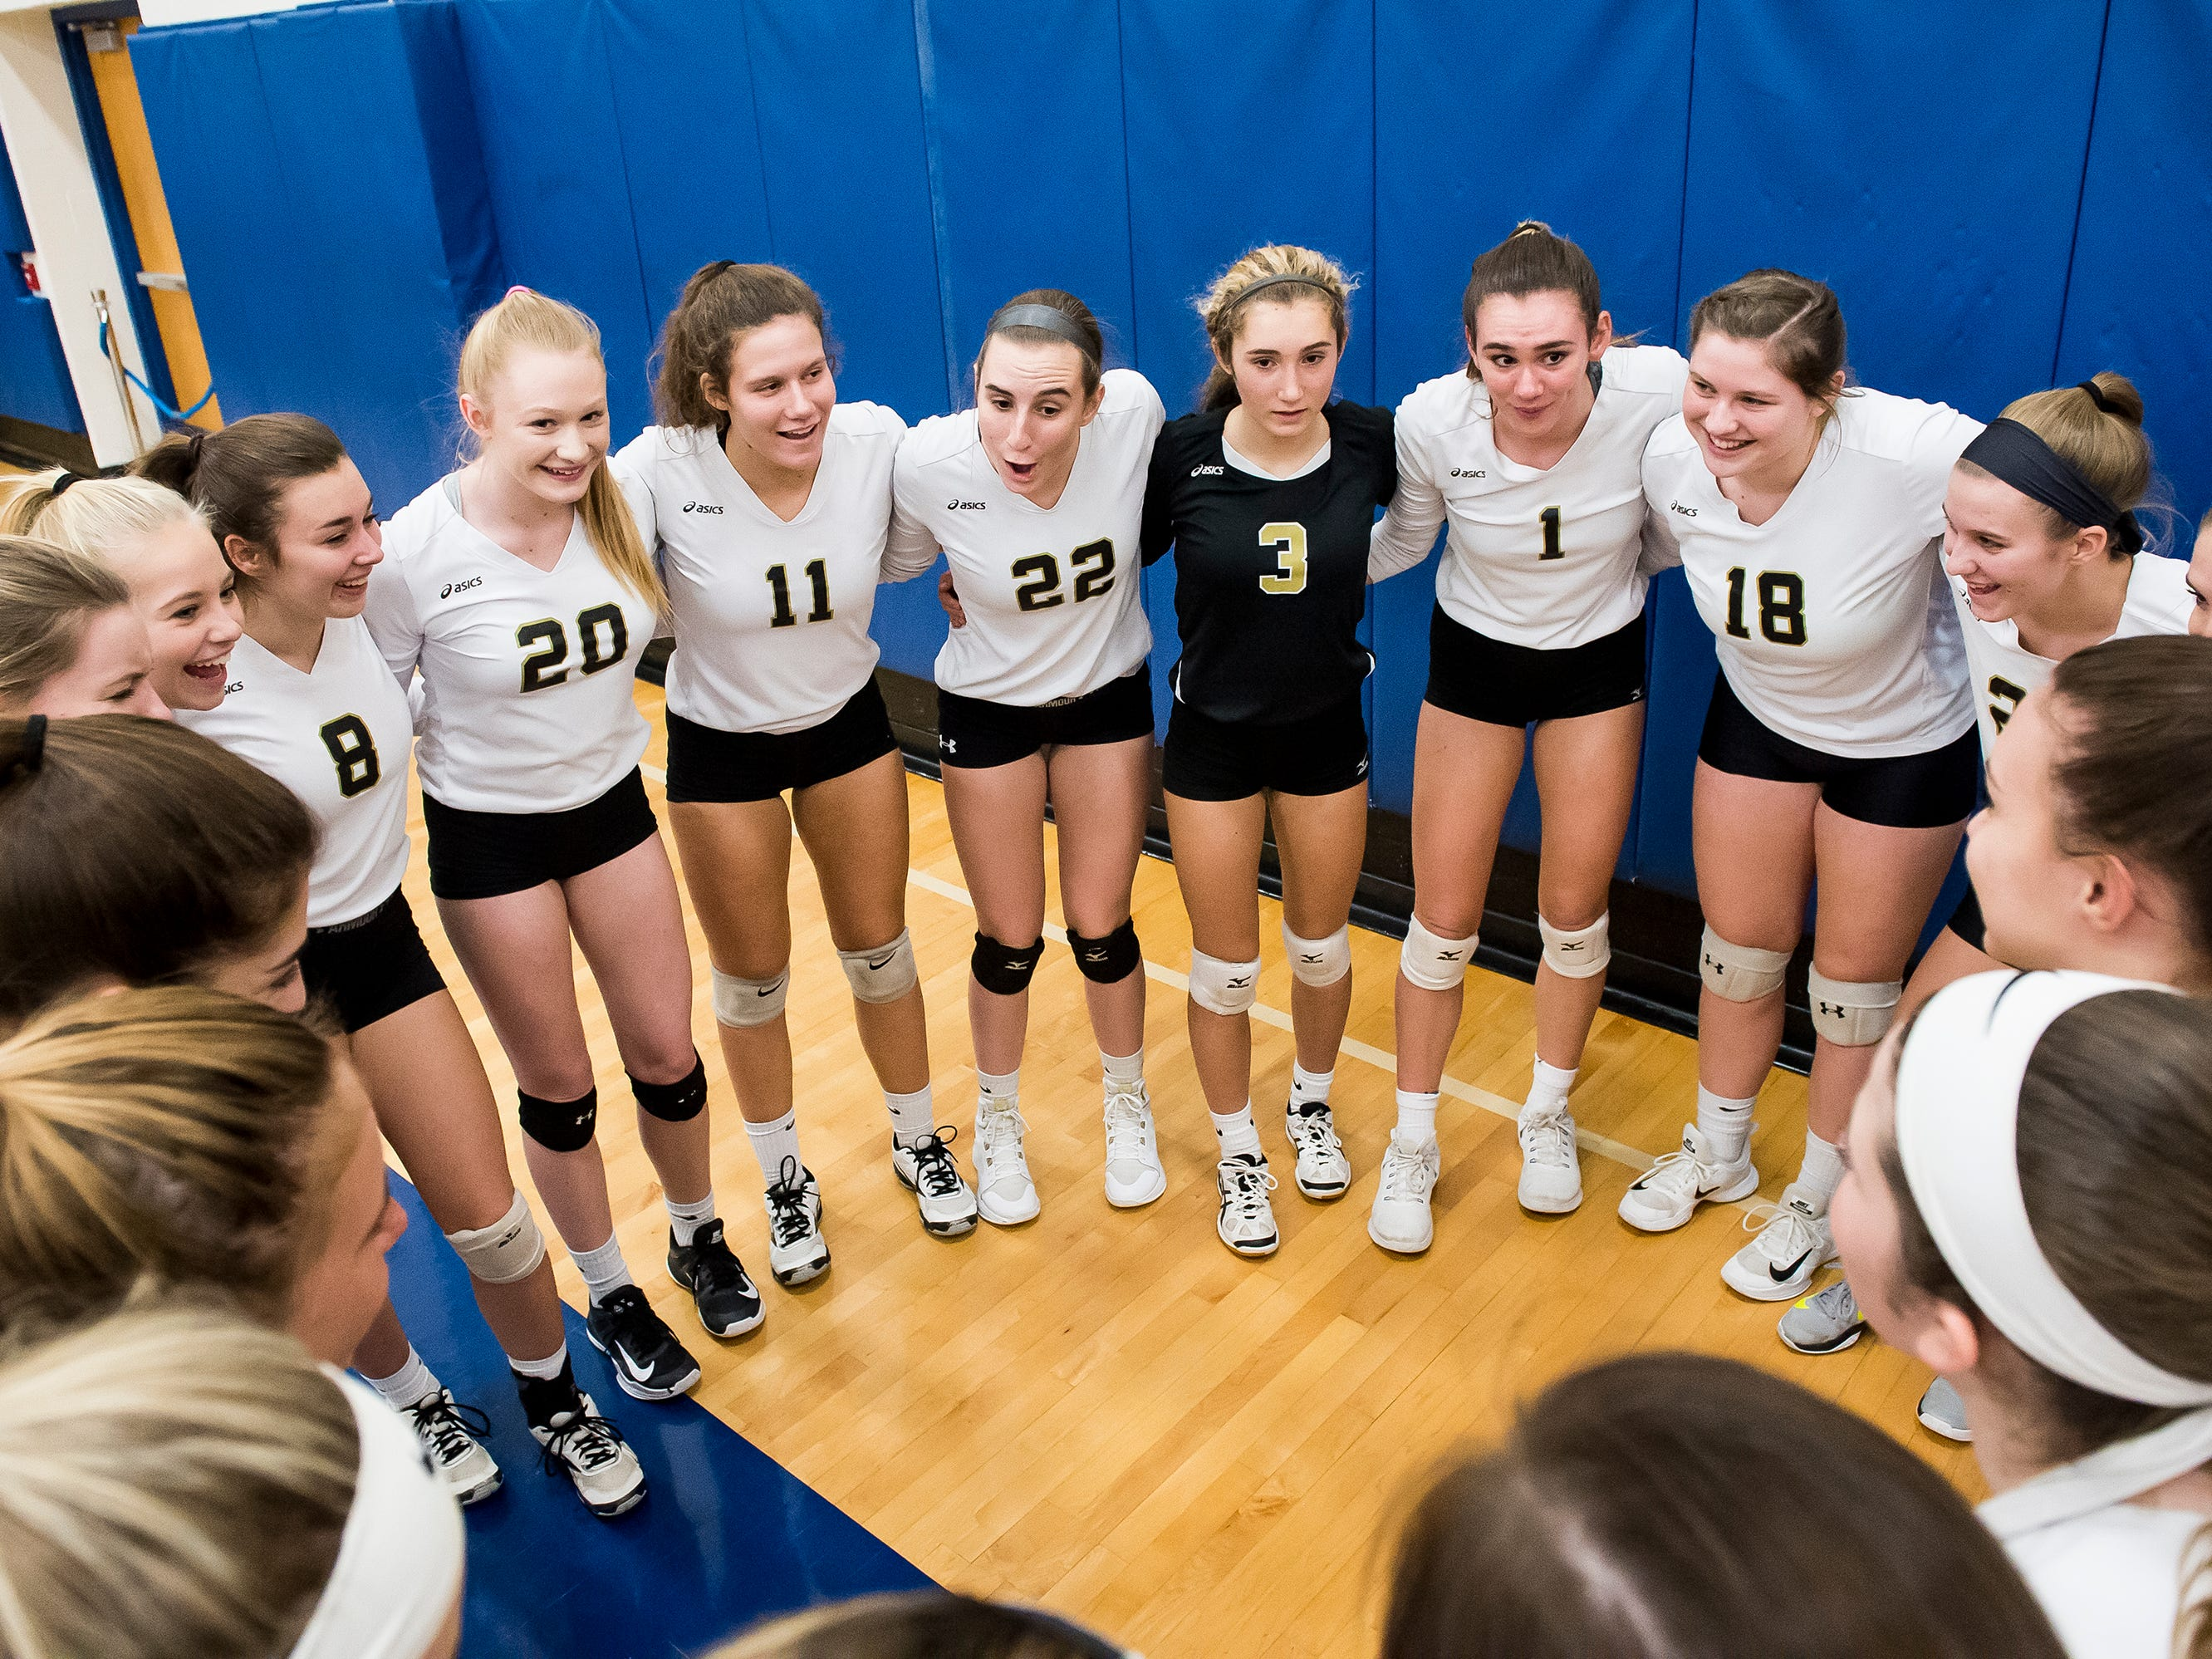 Delone Catholic players prepare before taking on Holy Redeemer in a PIAA 2A semifinal game at Exeter Township High School in Reading on Tuesday, November 13, 2018. The Squires fell in five sets; 23-25, 25-13, 25-13, 18-25, 15-10.